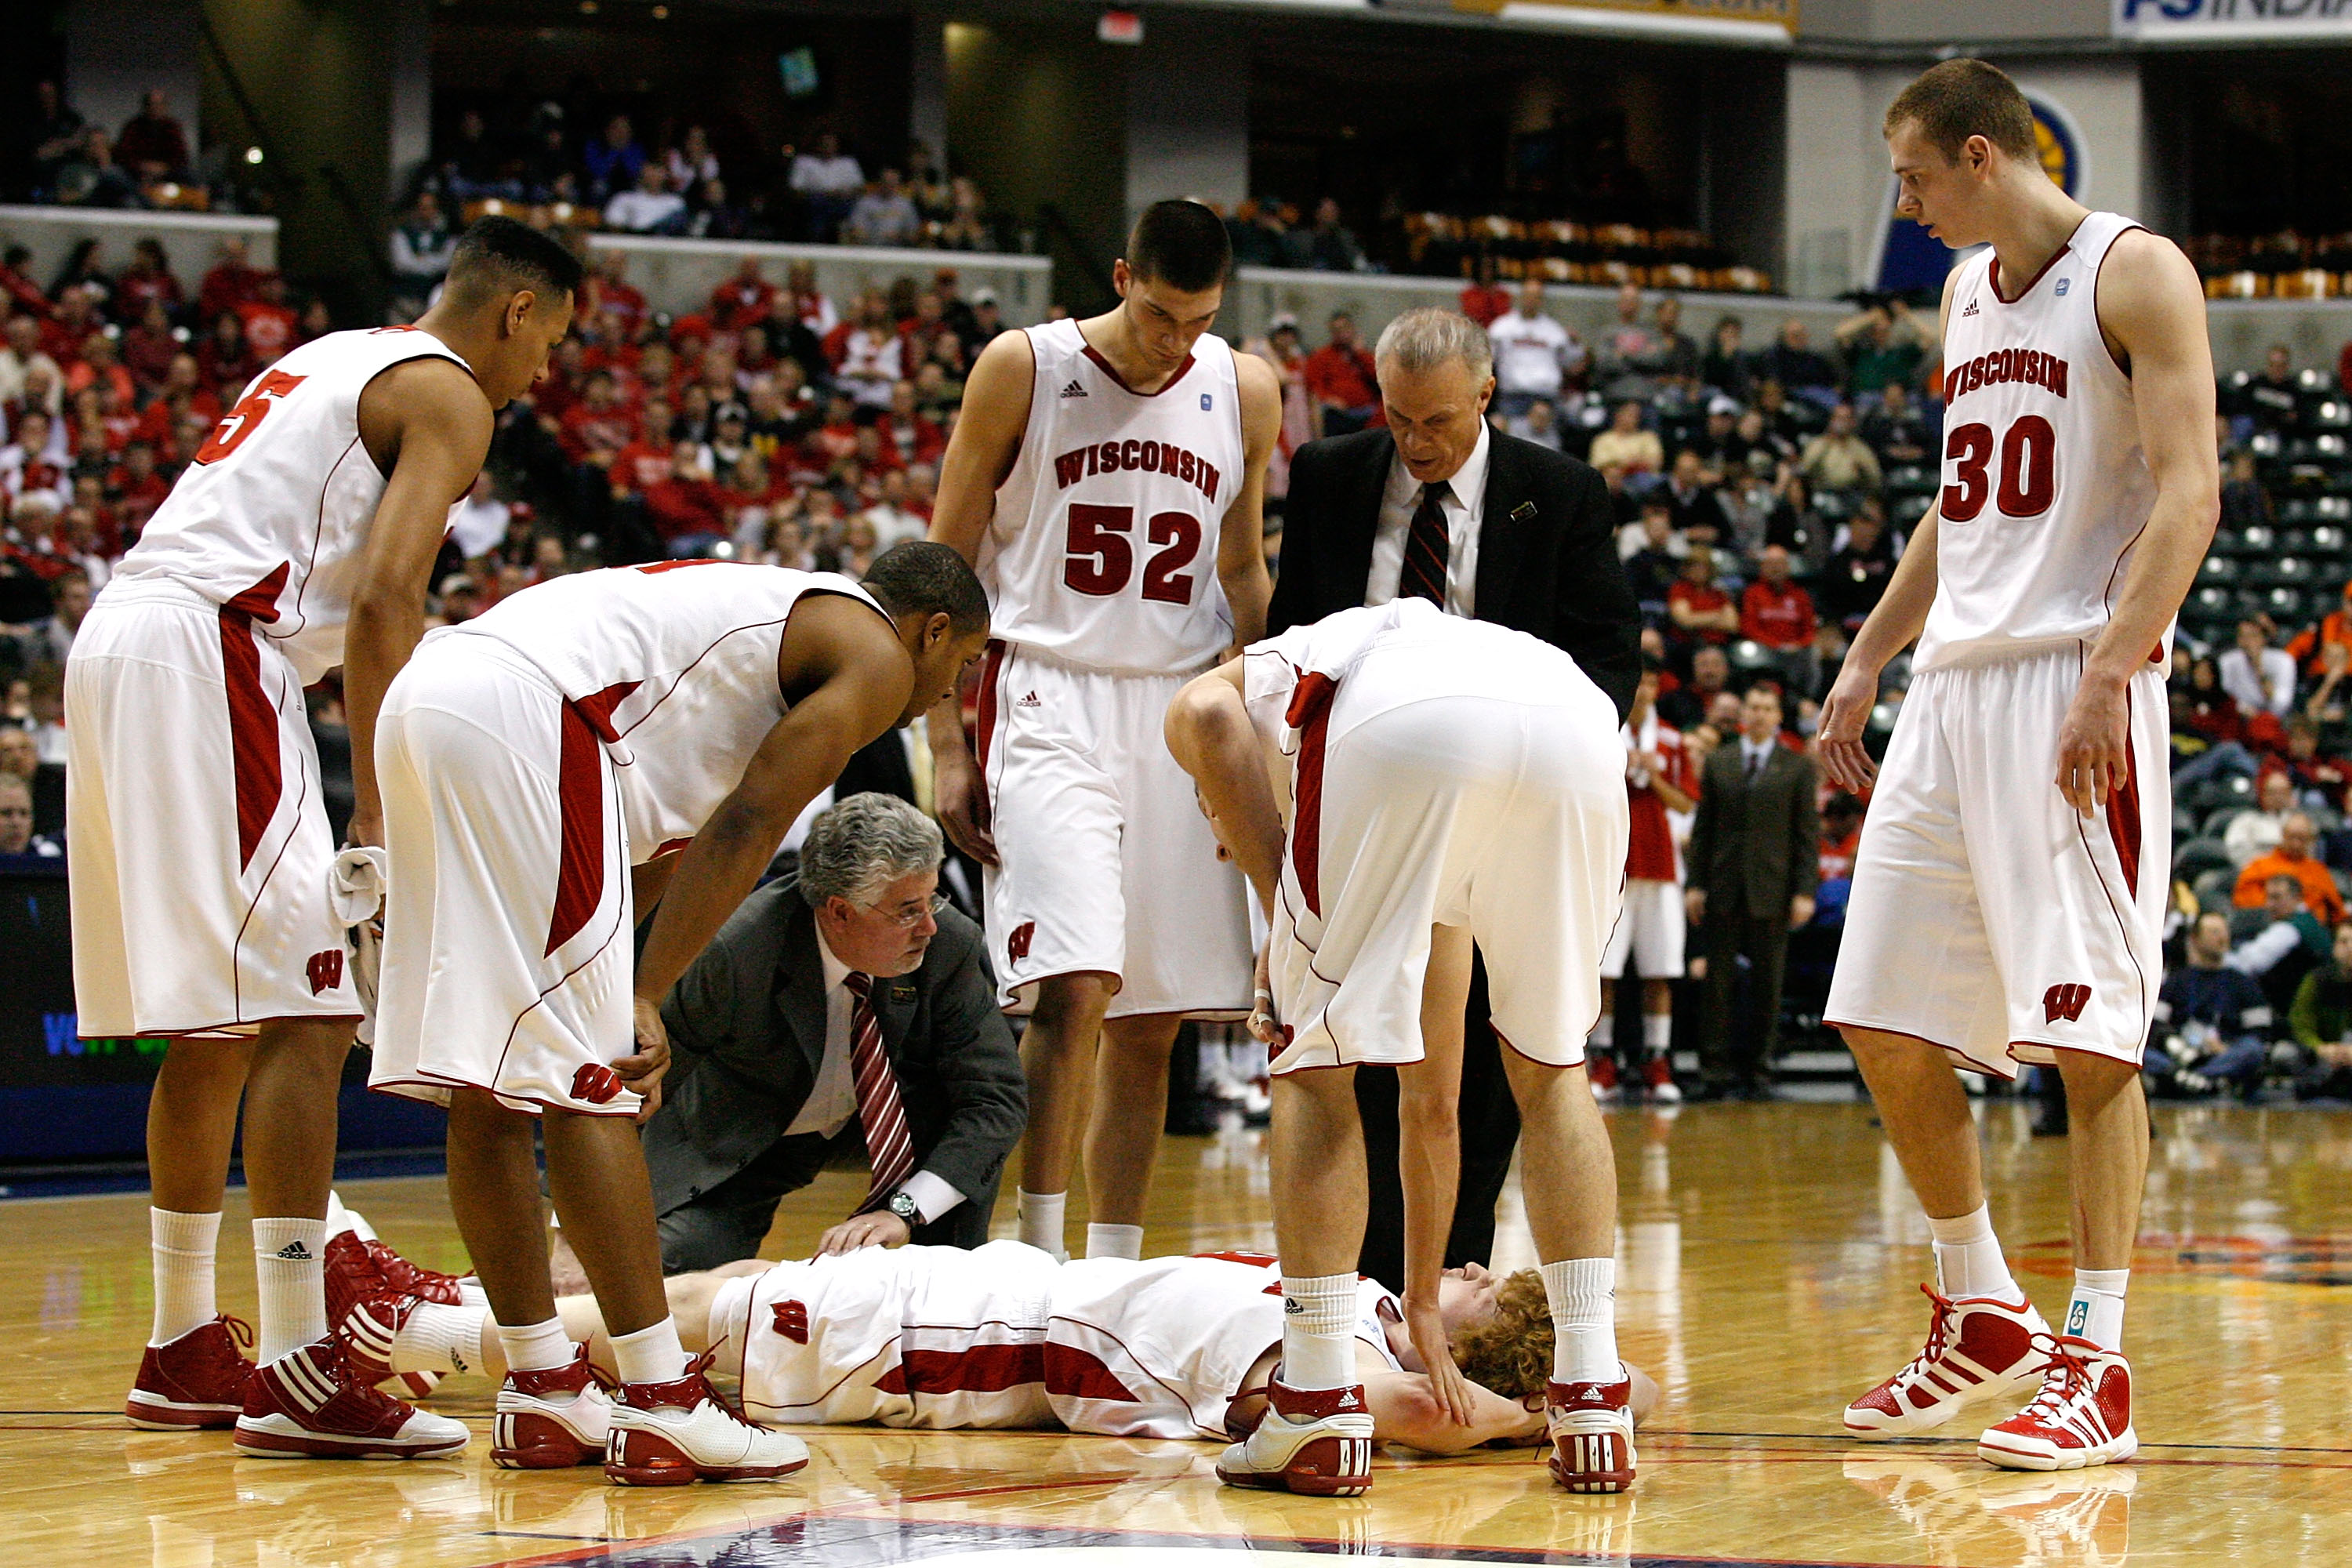 INDIANAPOLIS, IN - MARCH 11:  Mike Bruesewitz #31 of the Wisconsin Badgers is attended to by head coach Bo Ryan and the Badgers medical staff after he was hurt in the second half during the quarterfinals of the 2011 Big Ten Men's Basketball Tournament at